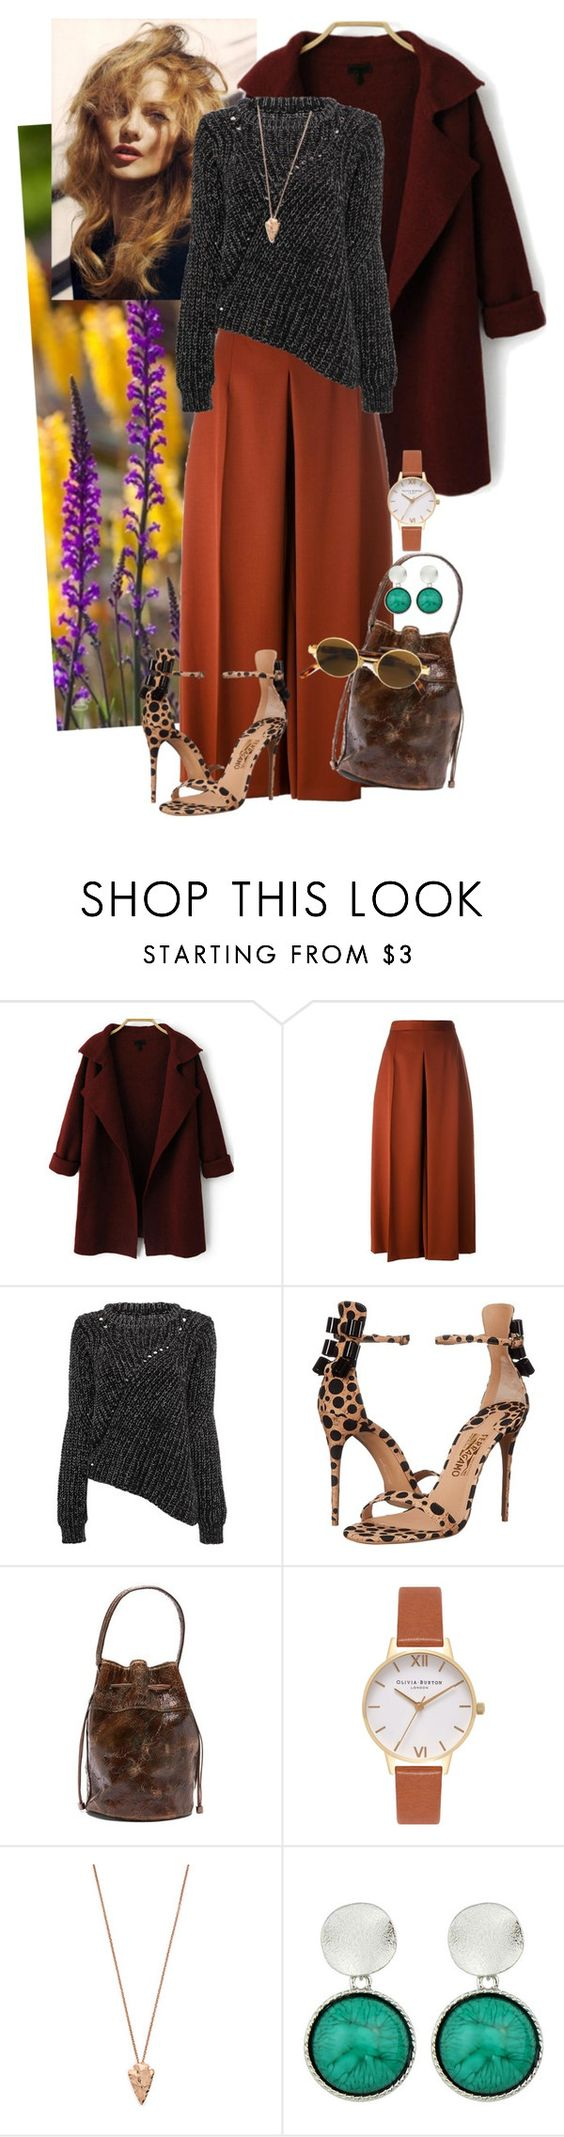 """Untitled #91"" by jonestyle ❤ liked on Polyvore featuring Alexander McQueen, Salvatore Ferragamo, Donald J Pliner, Olivia Burton, Pamela Love and Moschino"